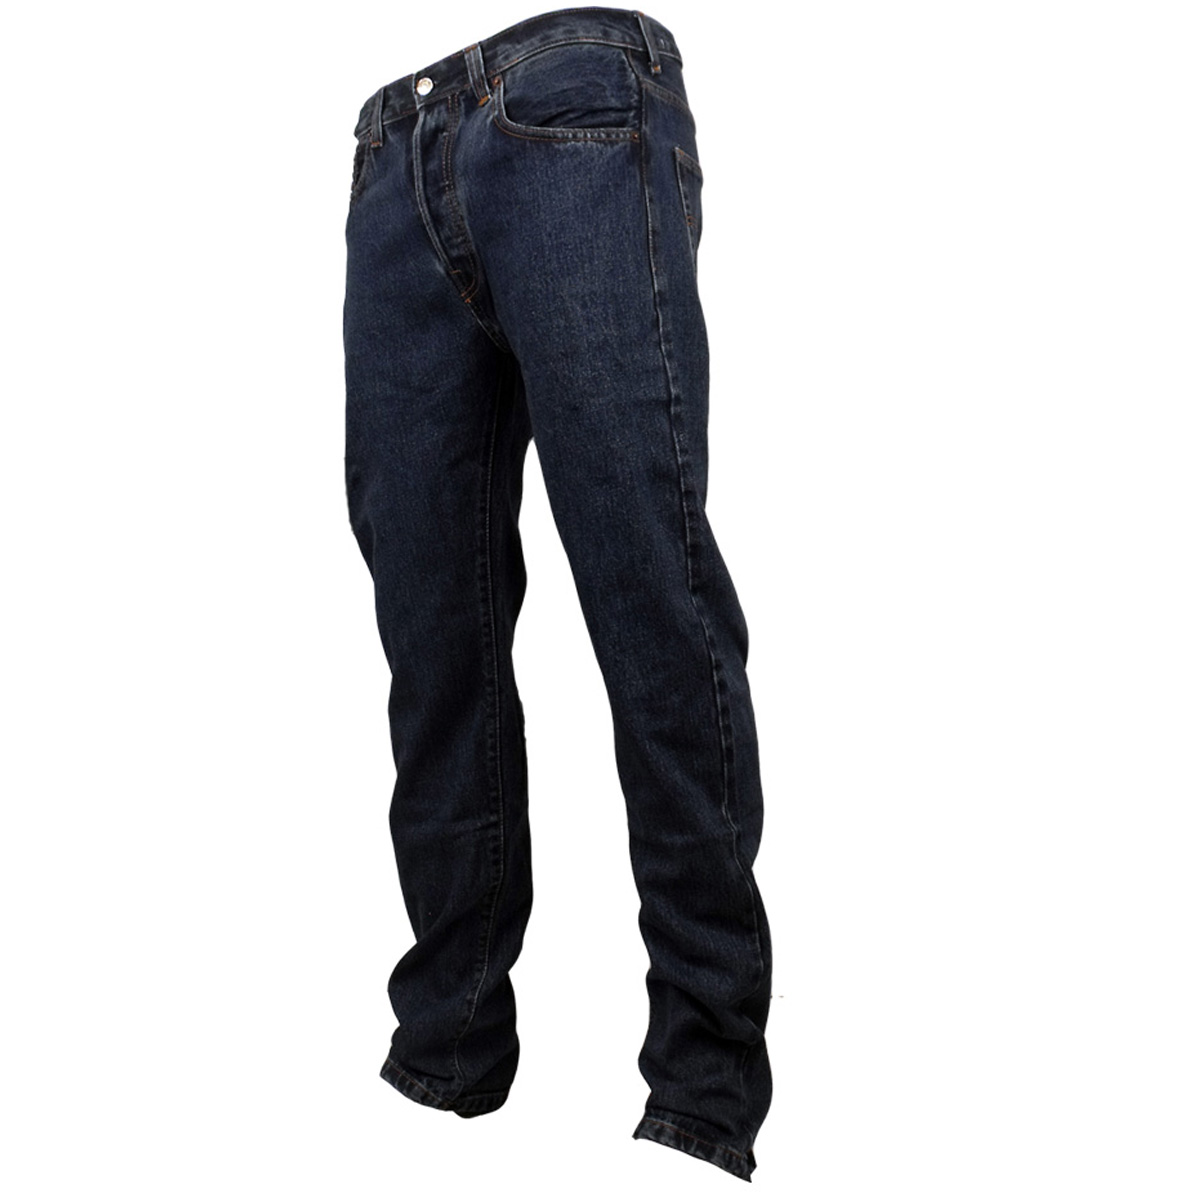 Mens-Levis-Denim-501-Jeans-Original-Designer-Straight-Jean-Regular-Fit-Brand-New